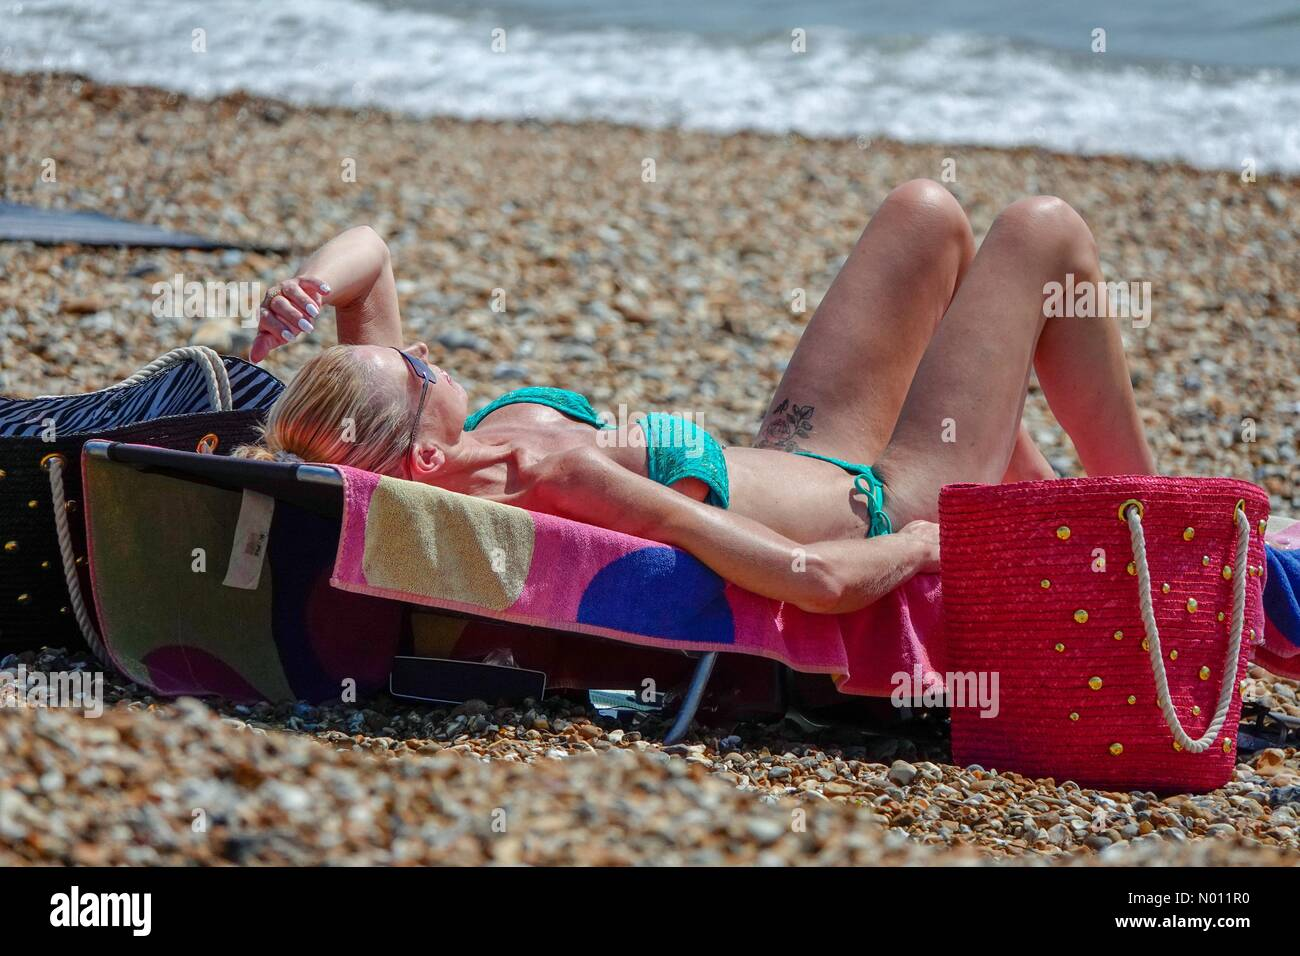 UK Weather: Hot and sunny at Hayling. Beachlands, Hayling Island. 23rd July 2019. Beautiful weather along the south coast today. People enjoying the beach at Hayling Island in Hampshire. Credit: jamesjagger/StockimoNews/Alamy Live News Stock Photo